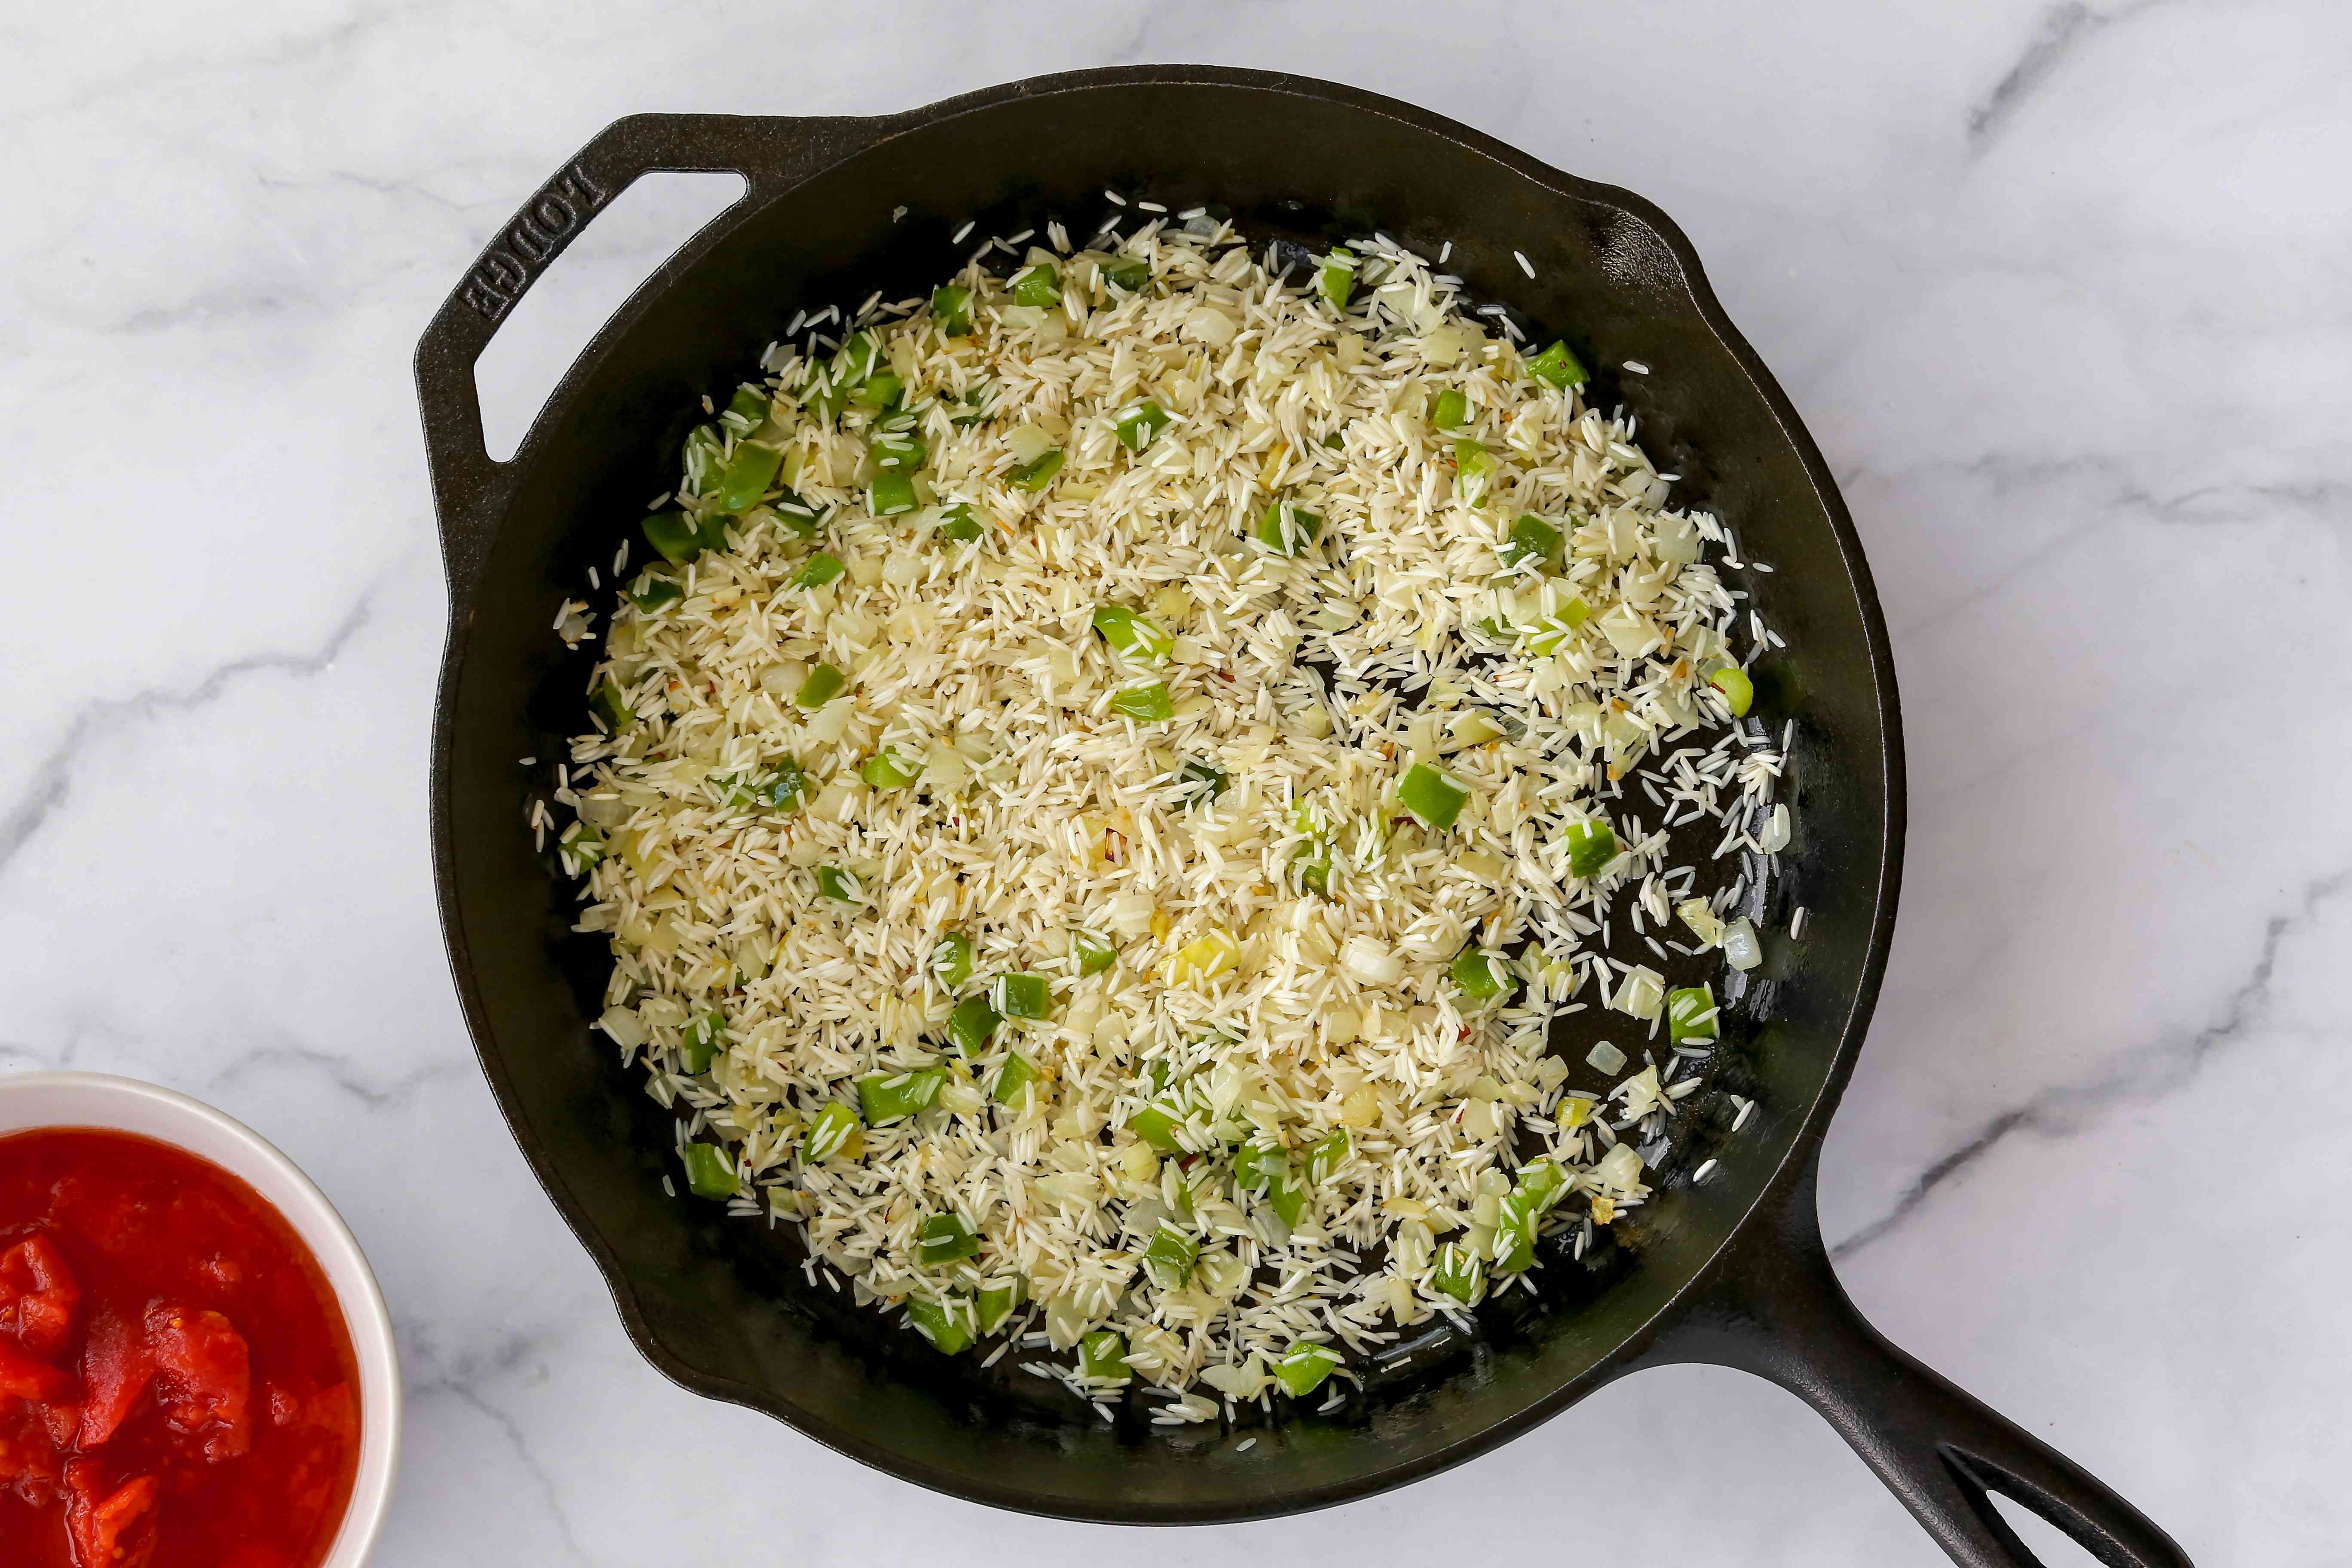 Rice and vegetables in a cast iron skillet